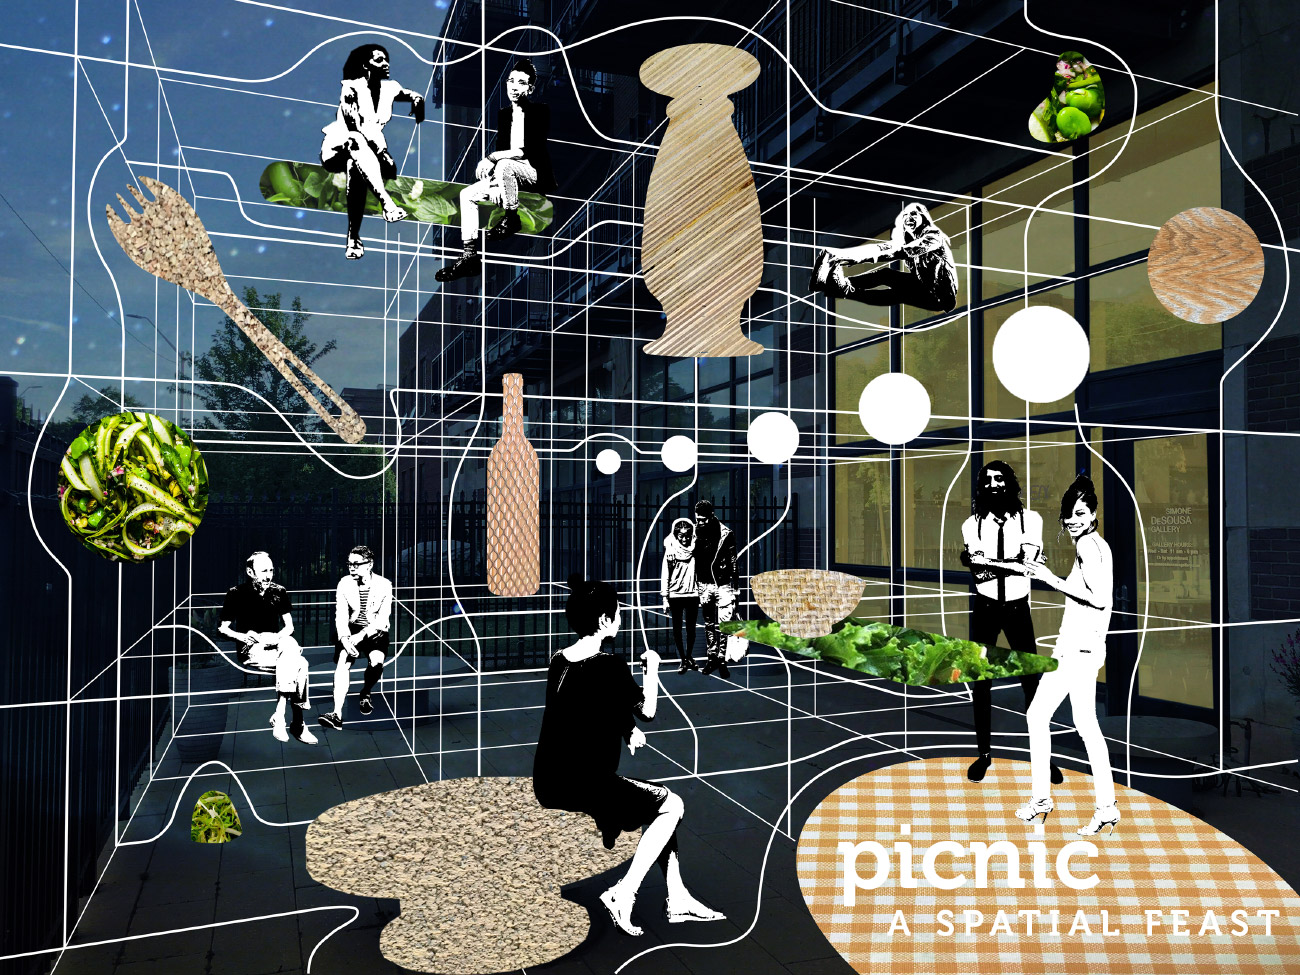 Graphic for Picnic curated by Detroit's Campo Studio